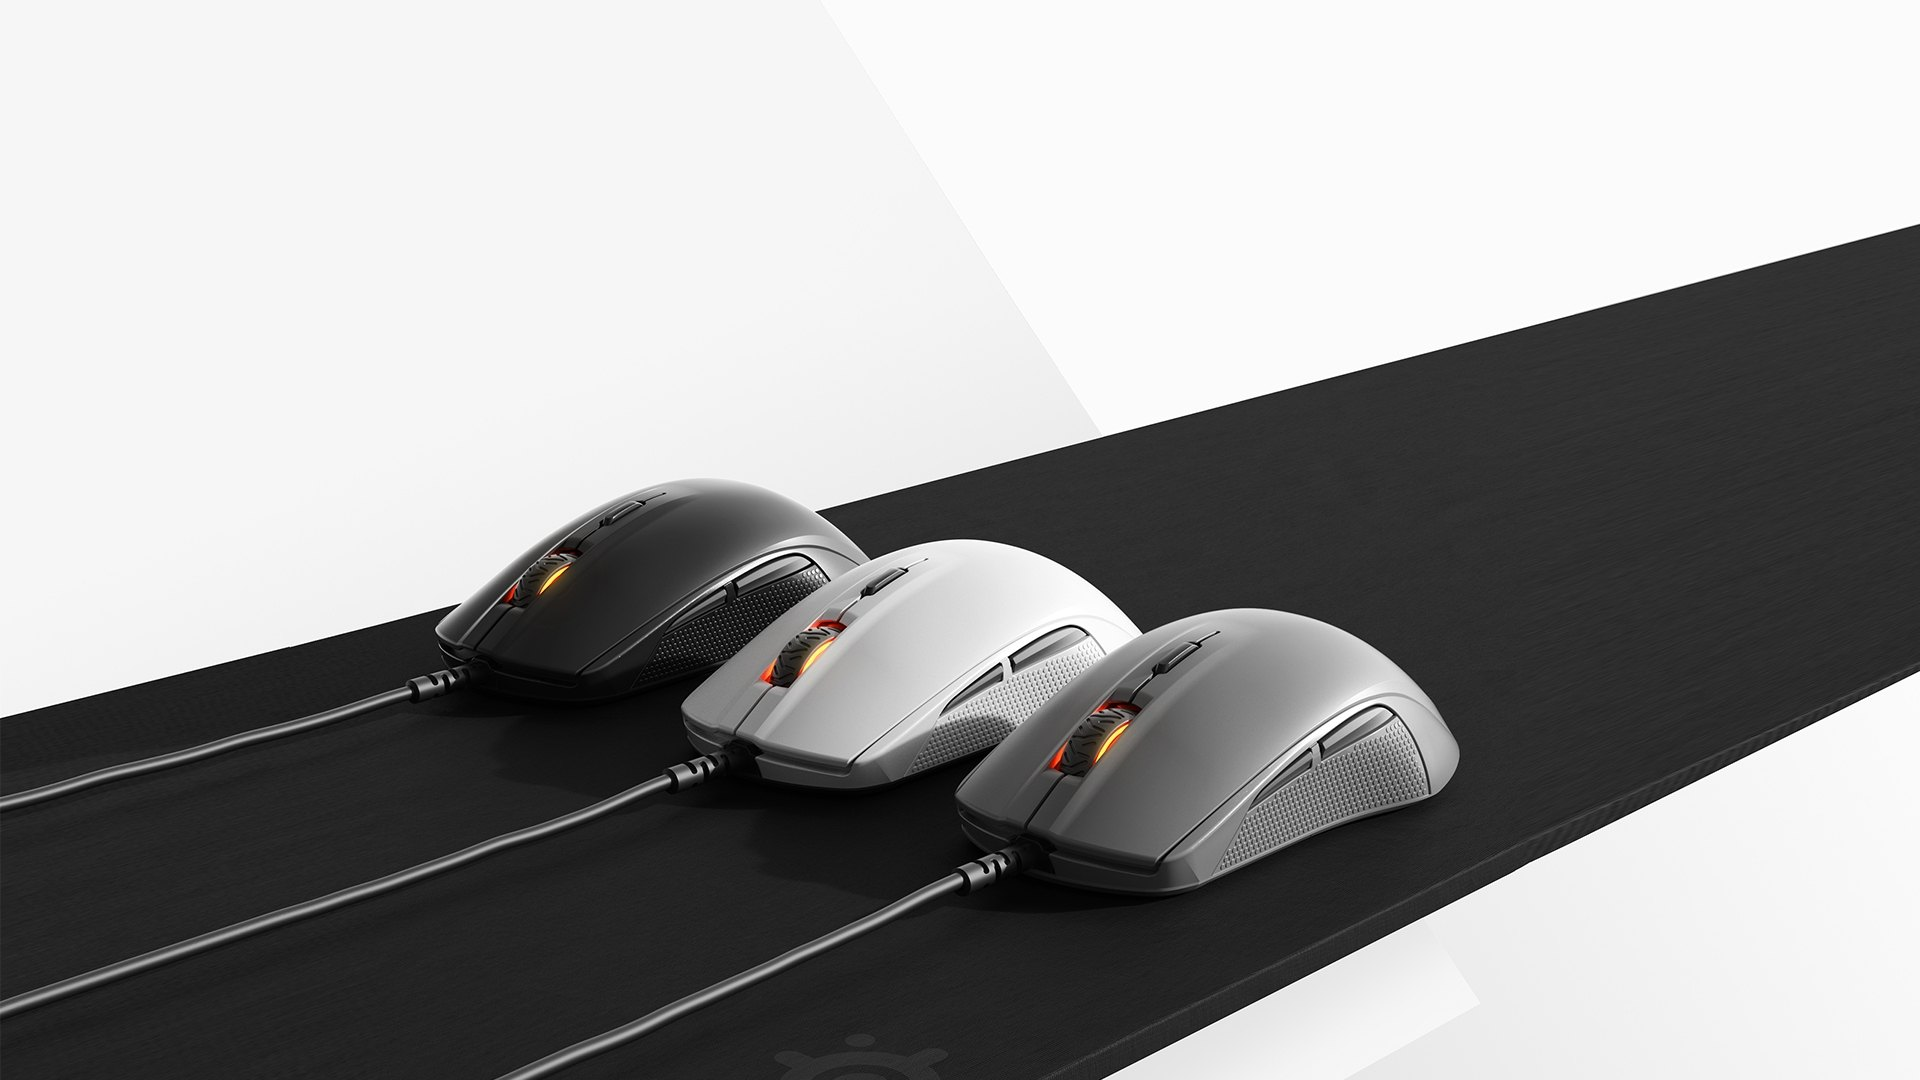 Rival 110 - Universal Grip Competitive Gaming Mouse